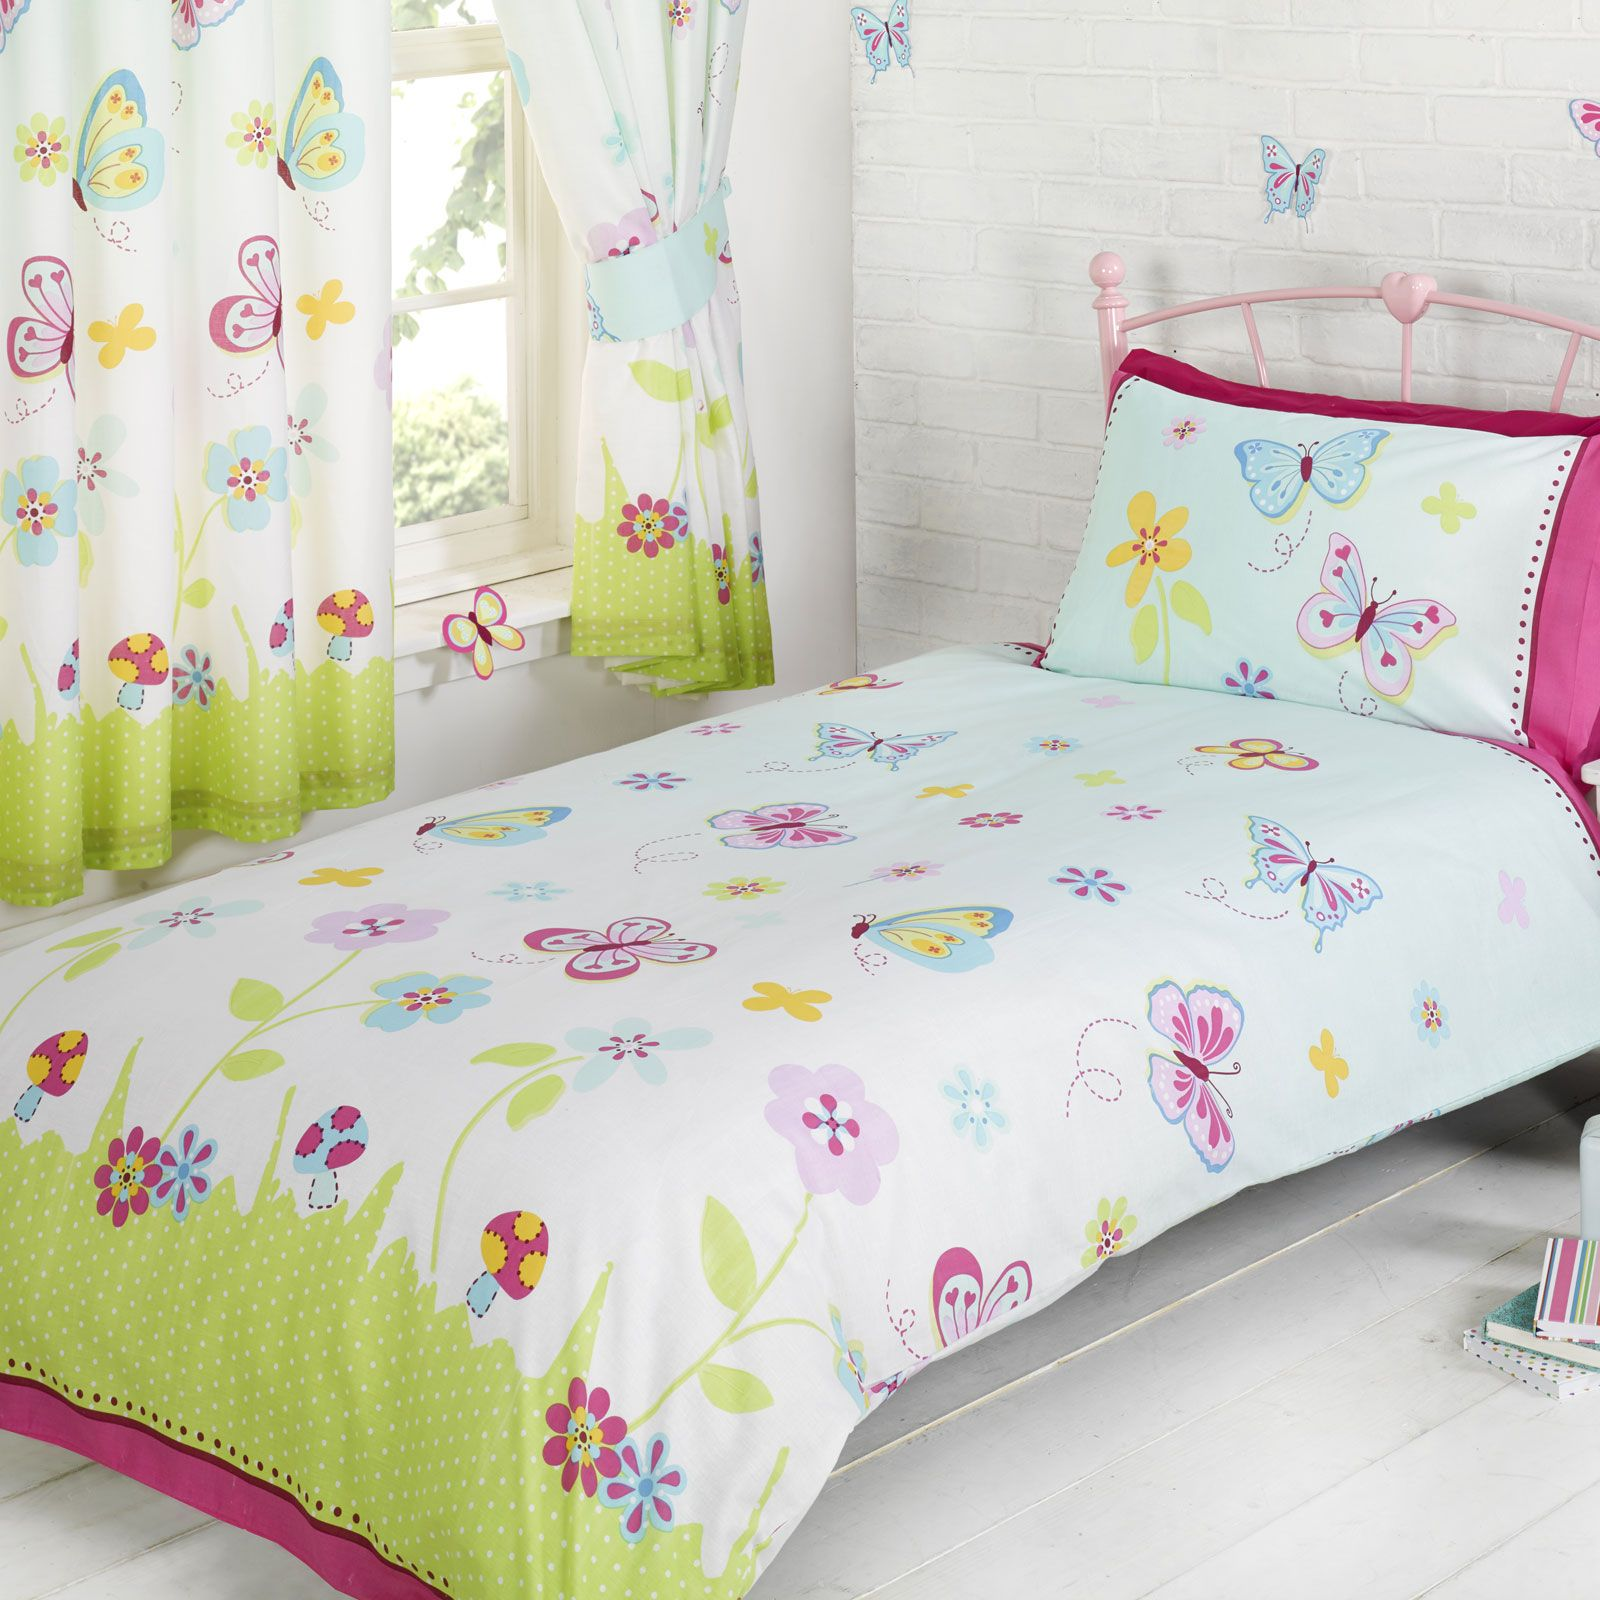 Butterfly Garden Bedroom Single Amp Double Duvets Cover